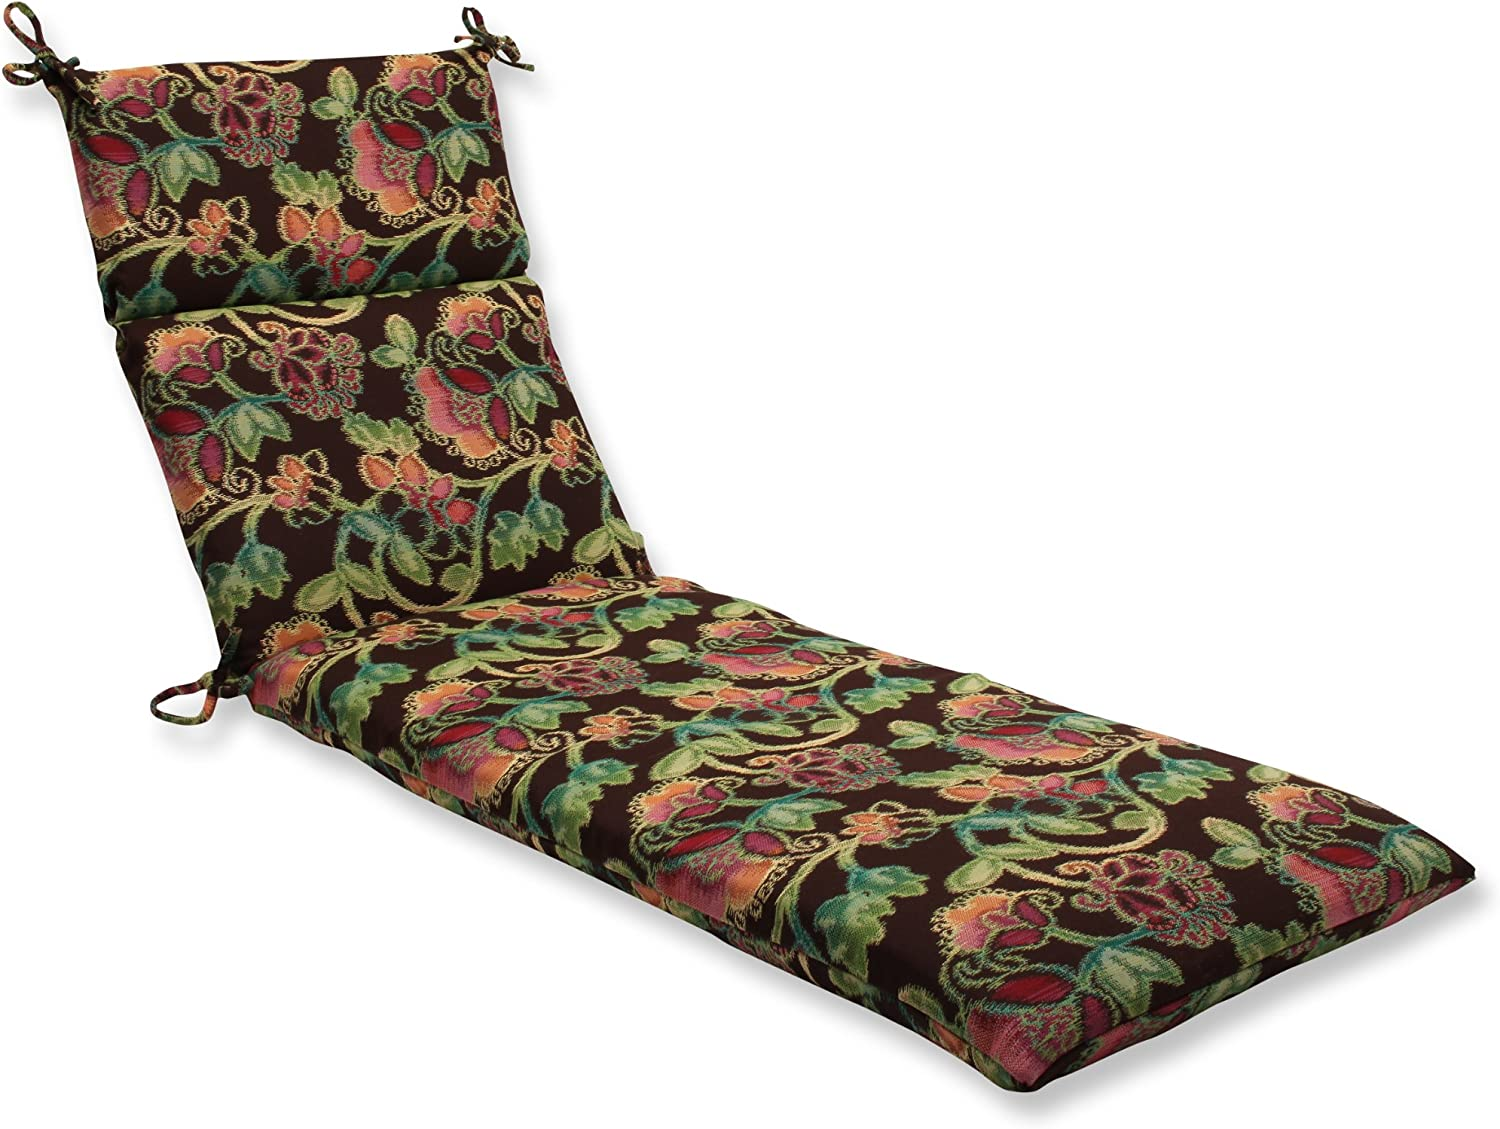 Pillow Perfect Indoor Outdoor Chaise Lounge Cushion with Sunbrella Vagabond Paradise Fabric, 72.5 in. L X 21 in. W X 3 in. D